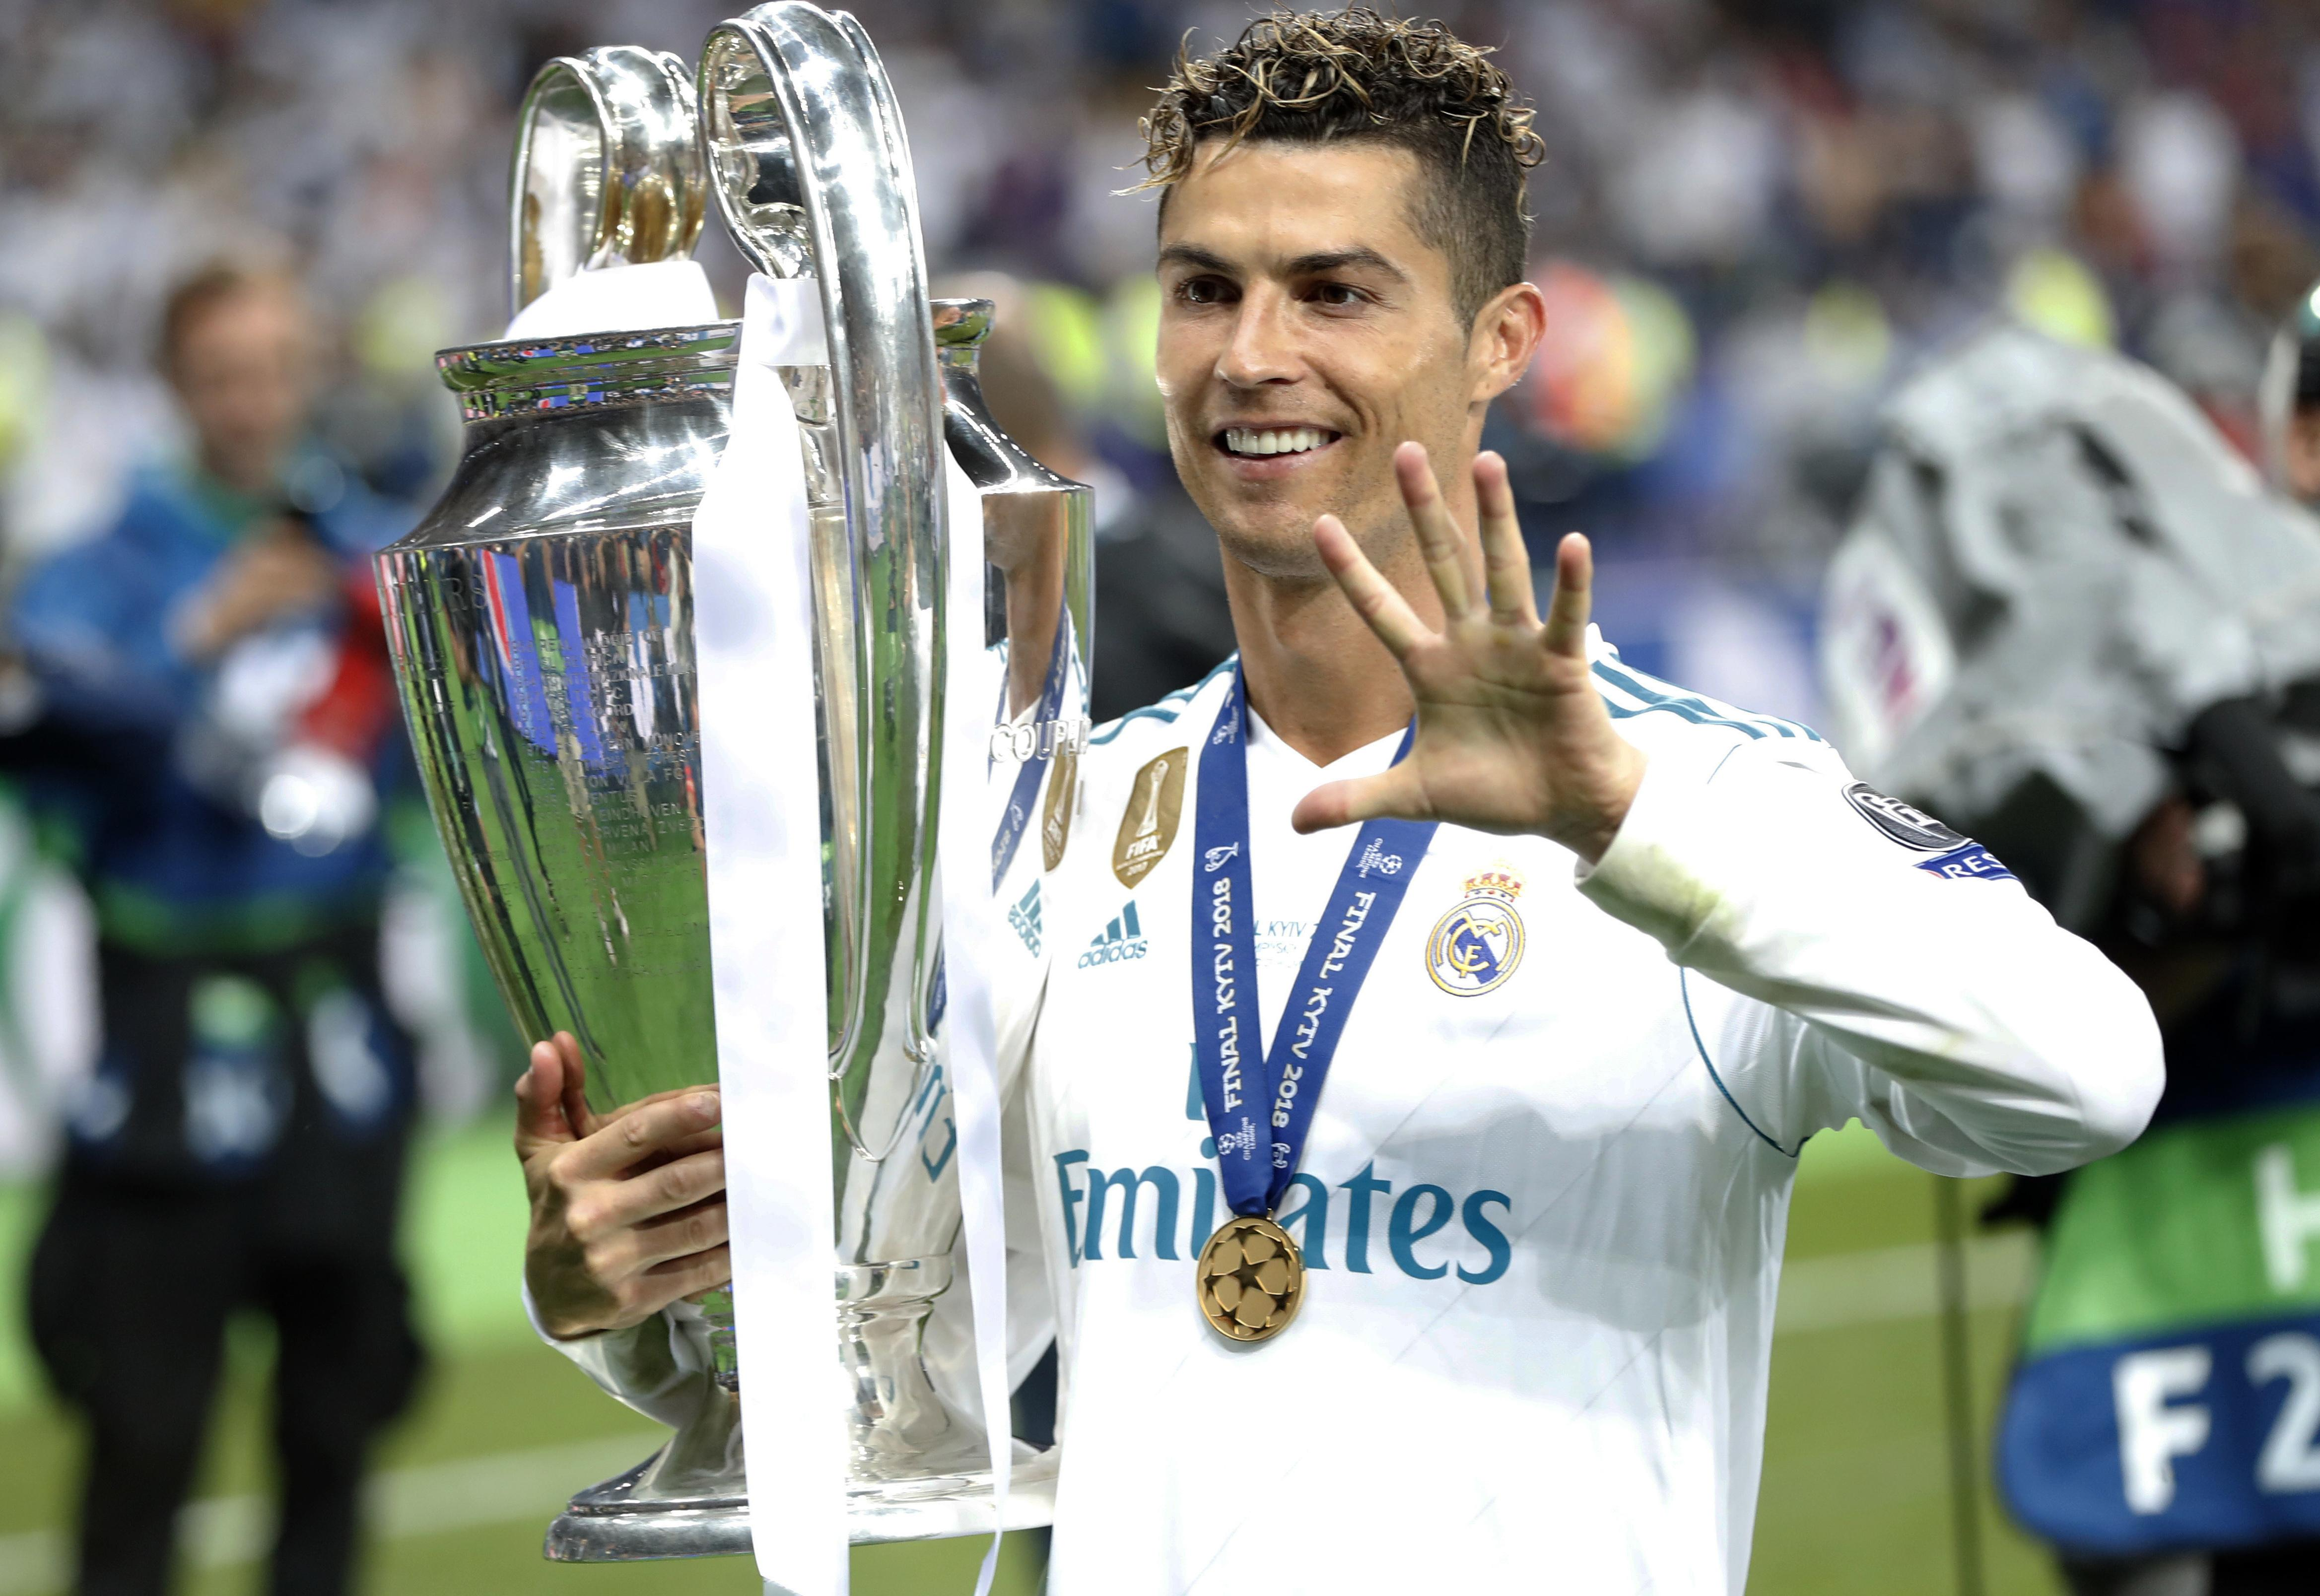 Ronaldo has made the Champions League his own personal playground